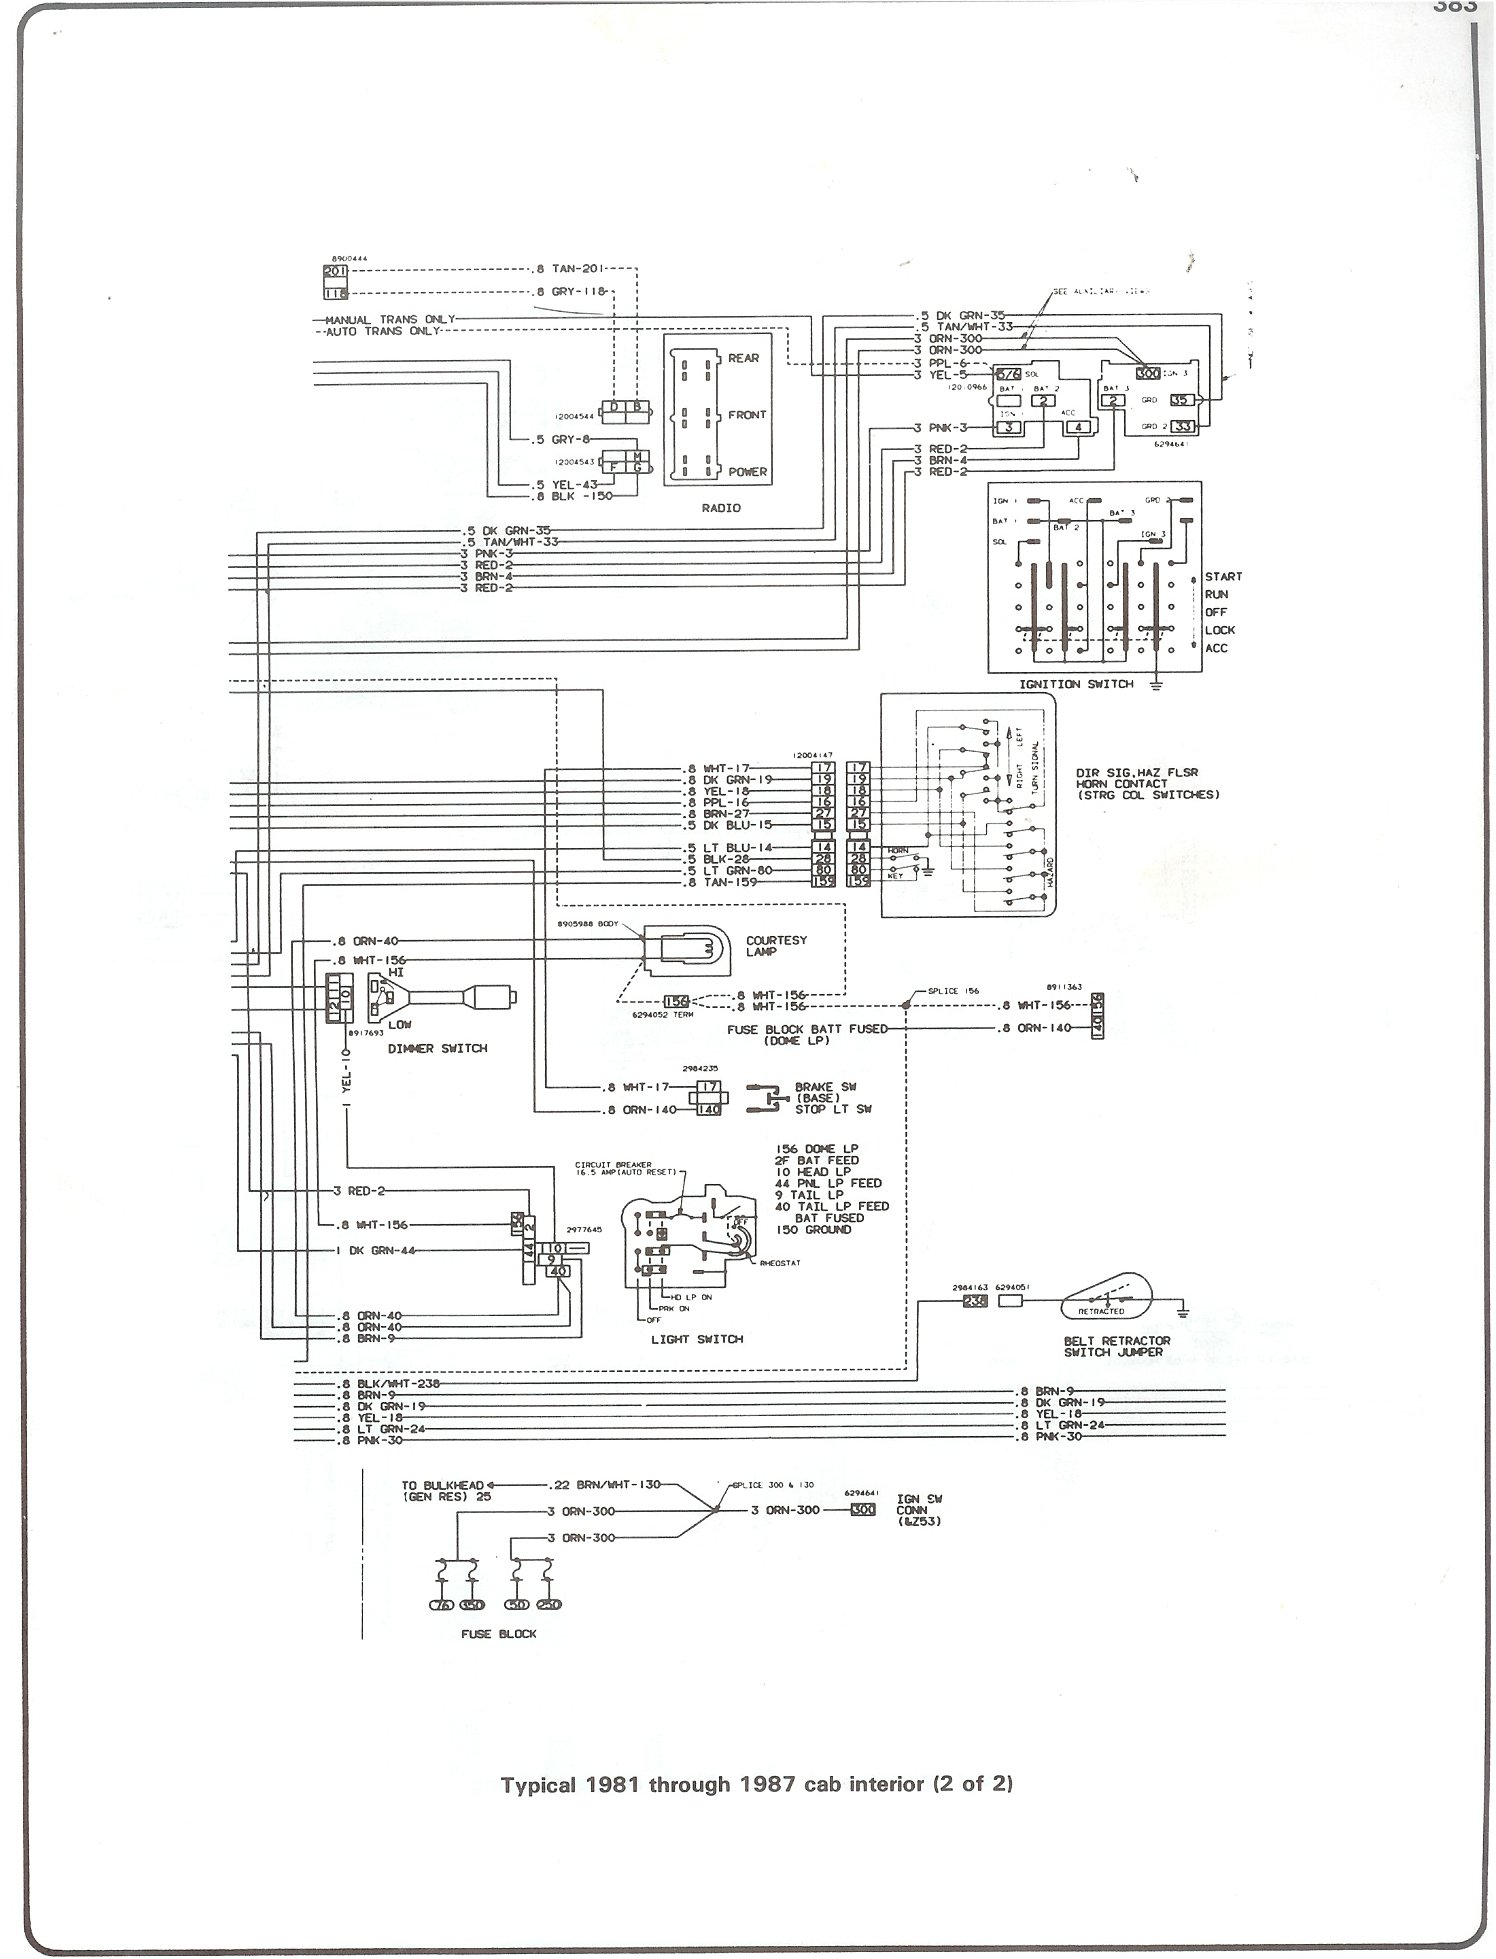 81 87_cab_inter_pg2 complete 73 87 wiring diagrams chevy truck wiring diagram at et-consult.org